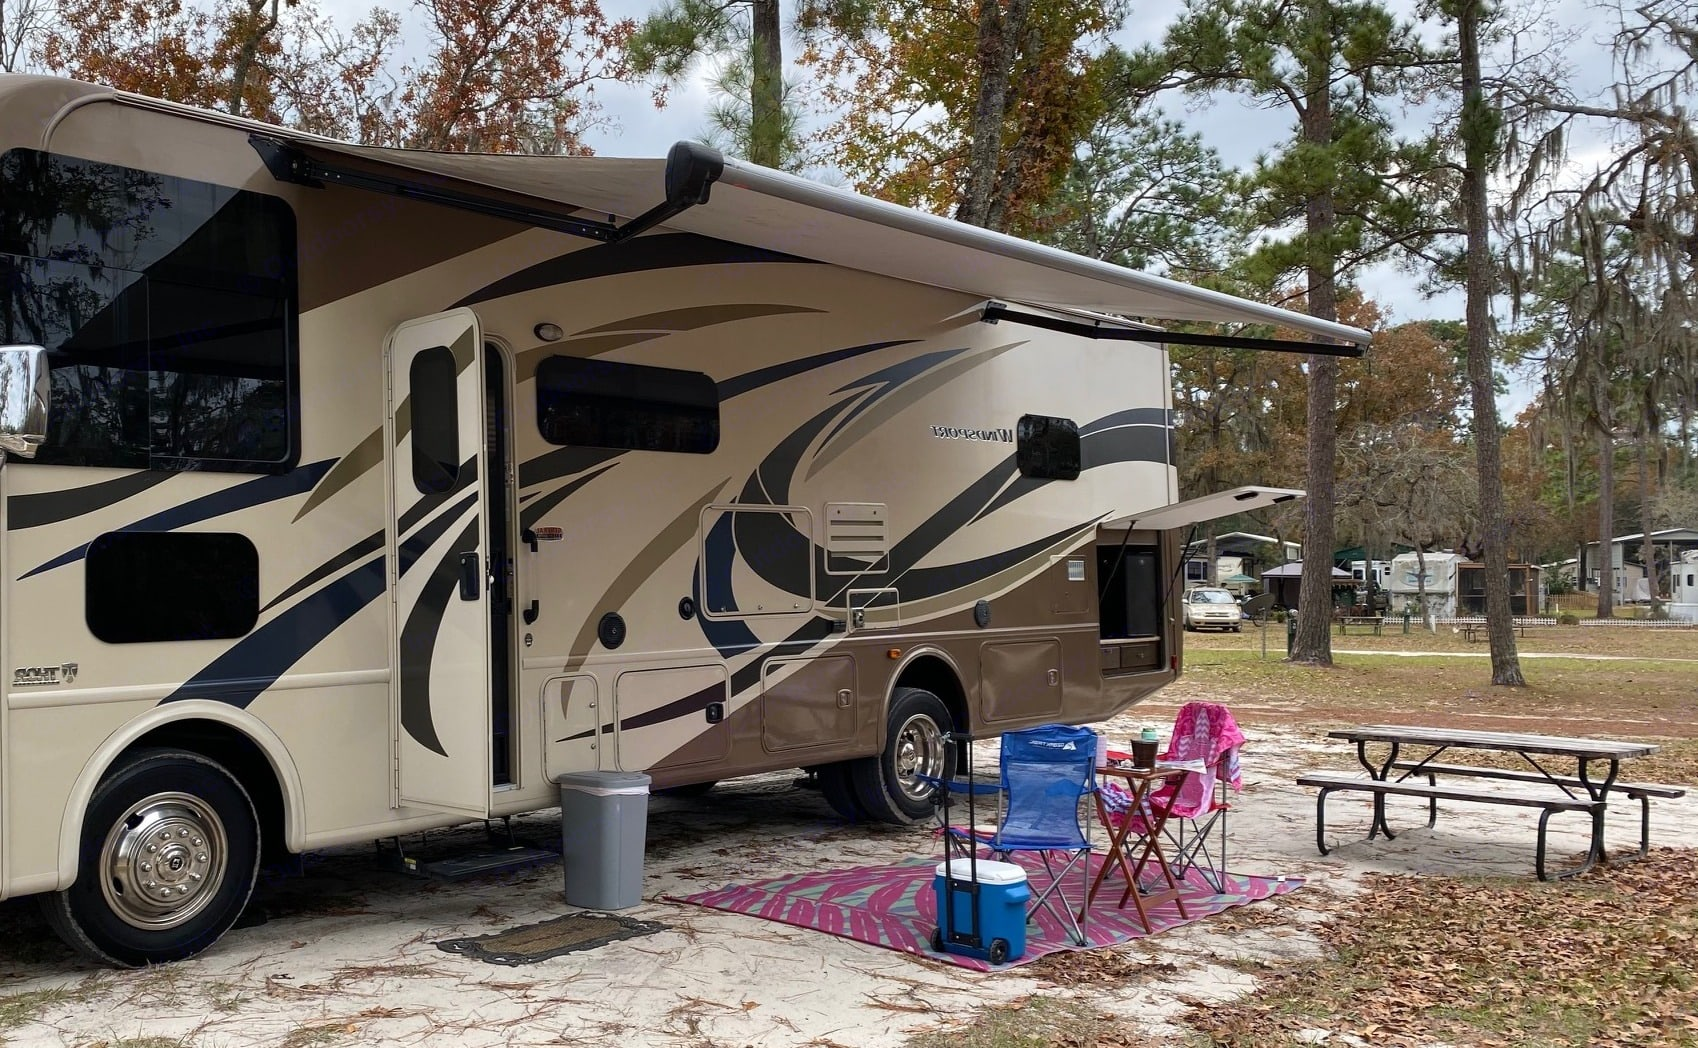 Outdoor Kitchen, Power awning, automatic leveling system. Thor Motor Coach Windsport 2017